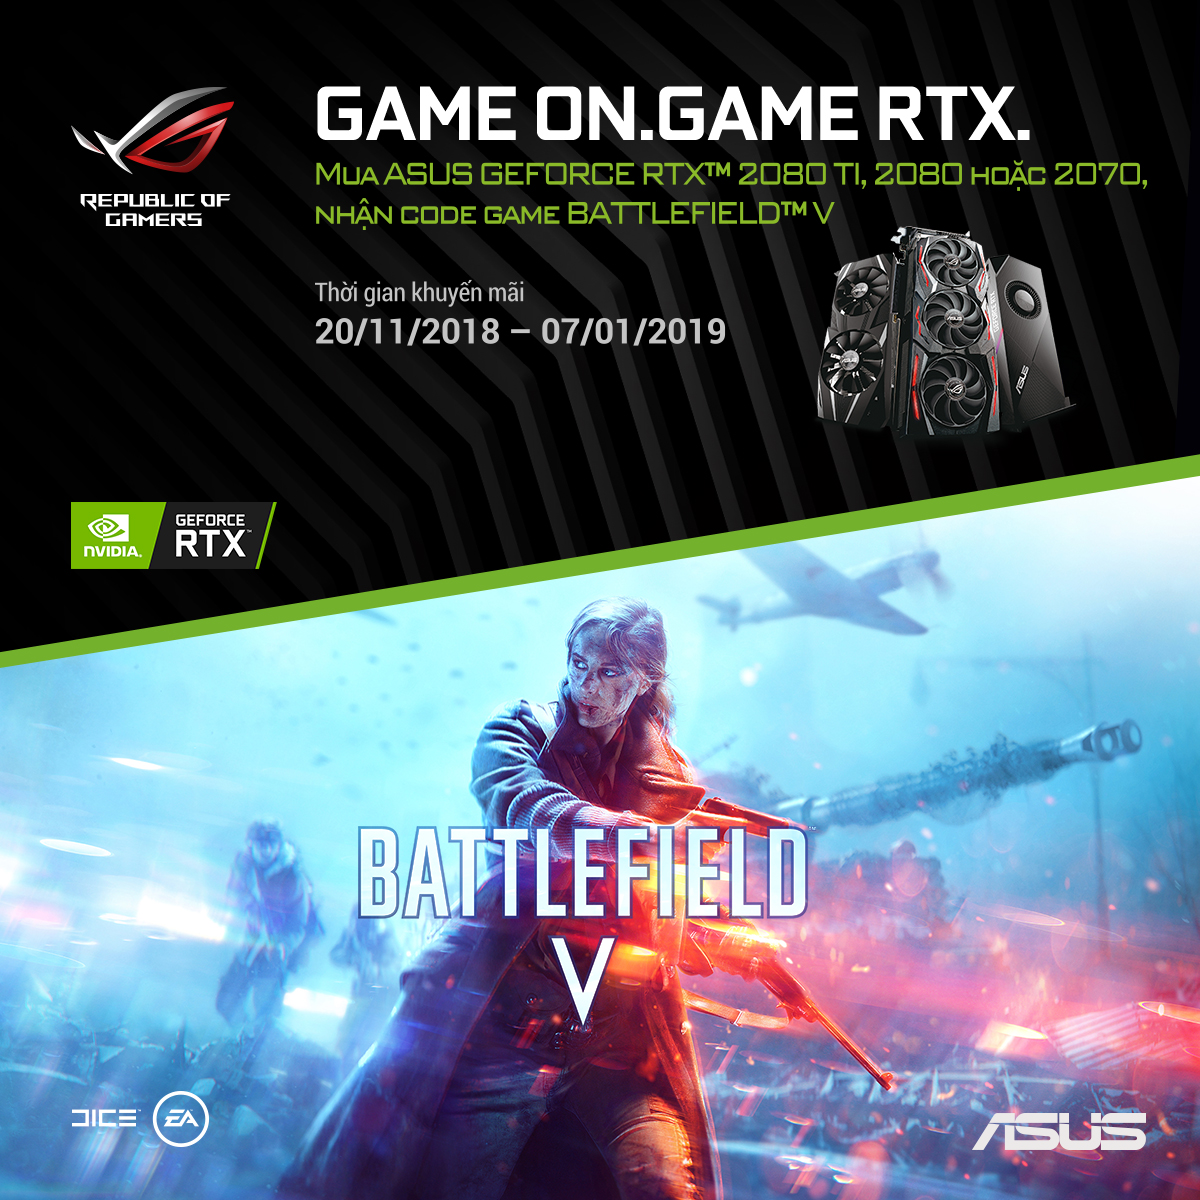 Mua card ASUS GeForce RTX 2080TI / 2080 / 2070 tặng code game